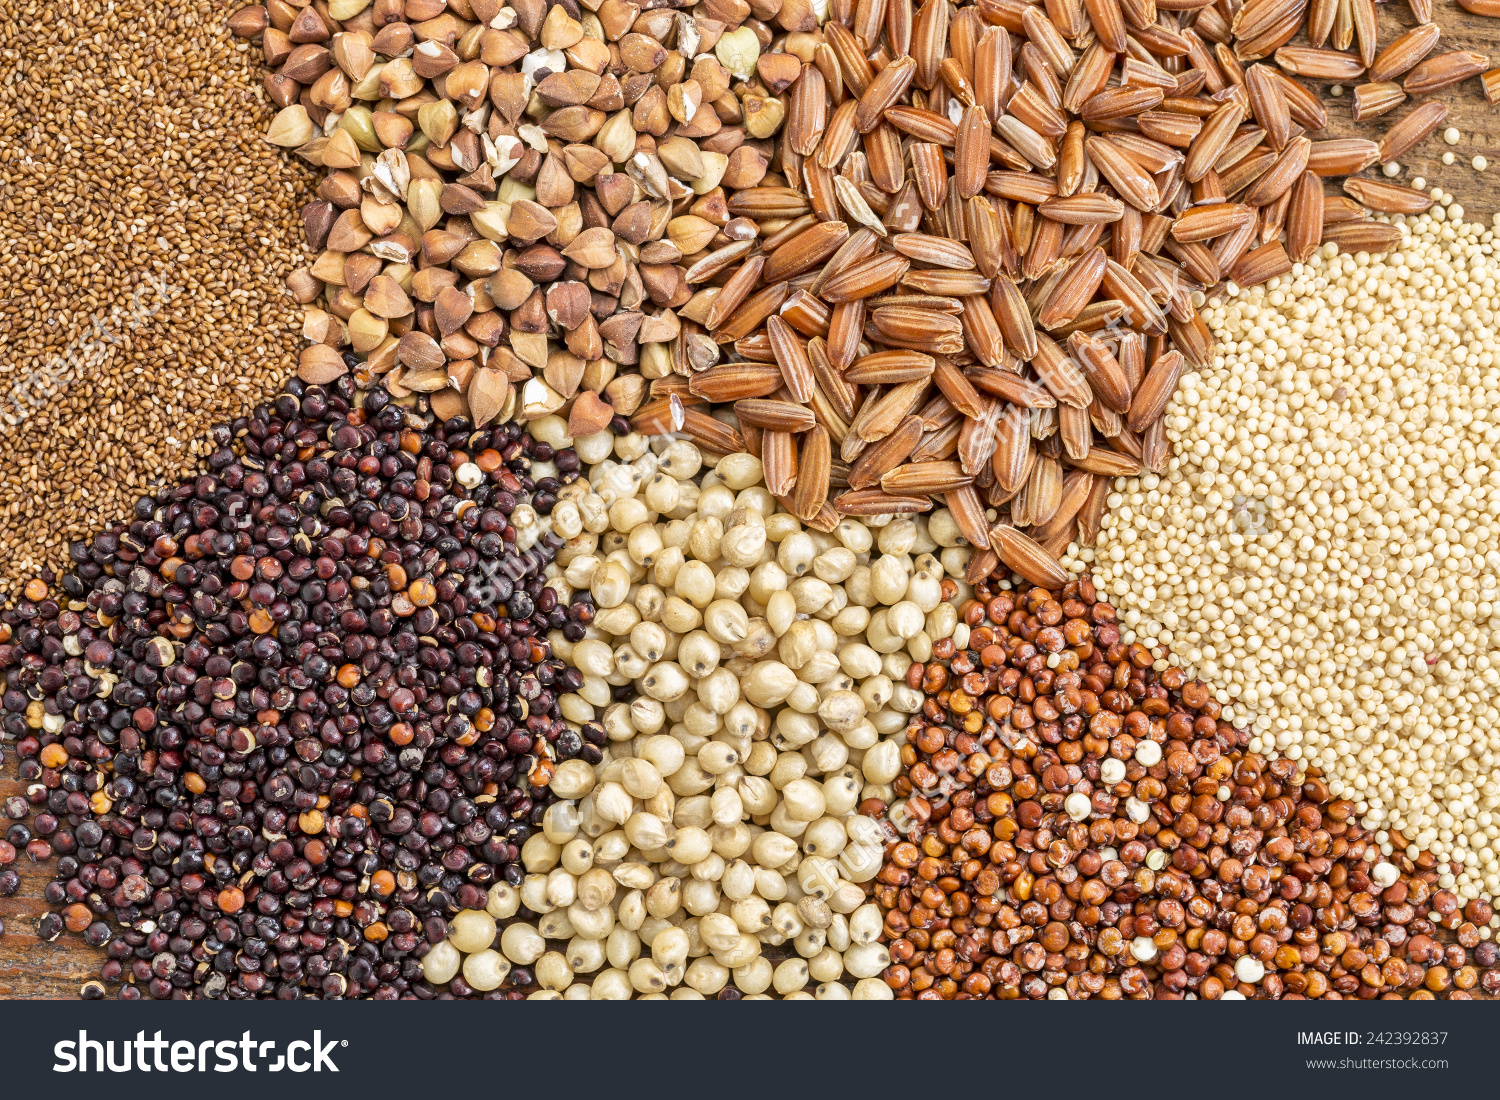 Variety Gluten Free Grains Buckwheat Amaranth Stock Photo.